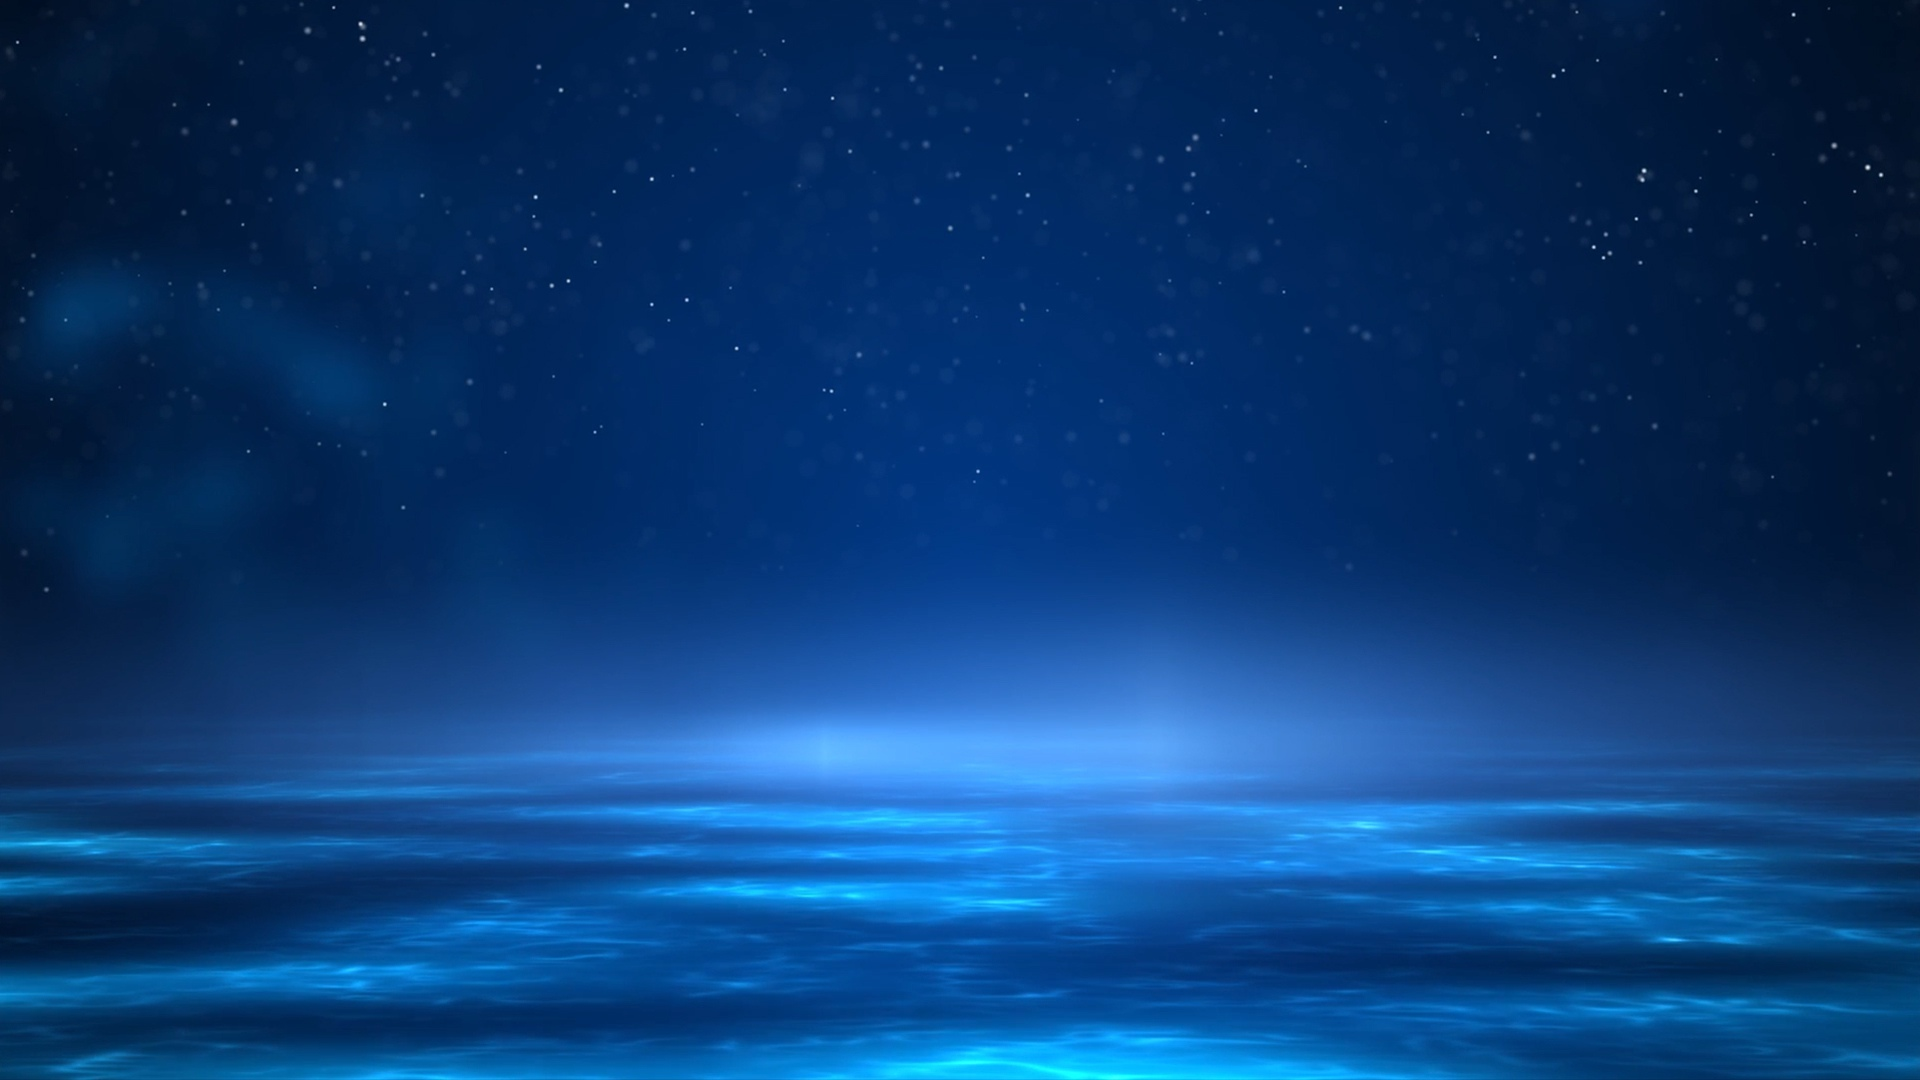 BLUE SEA ( RainWallpaper )